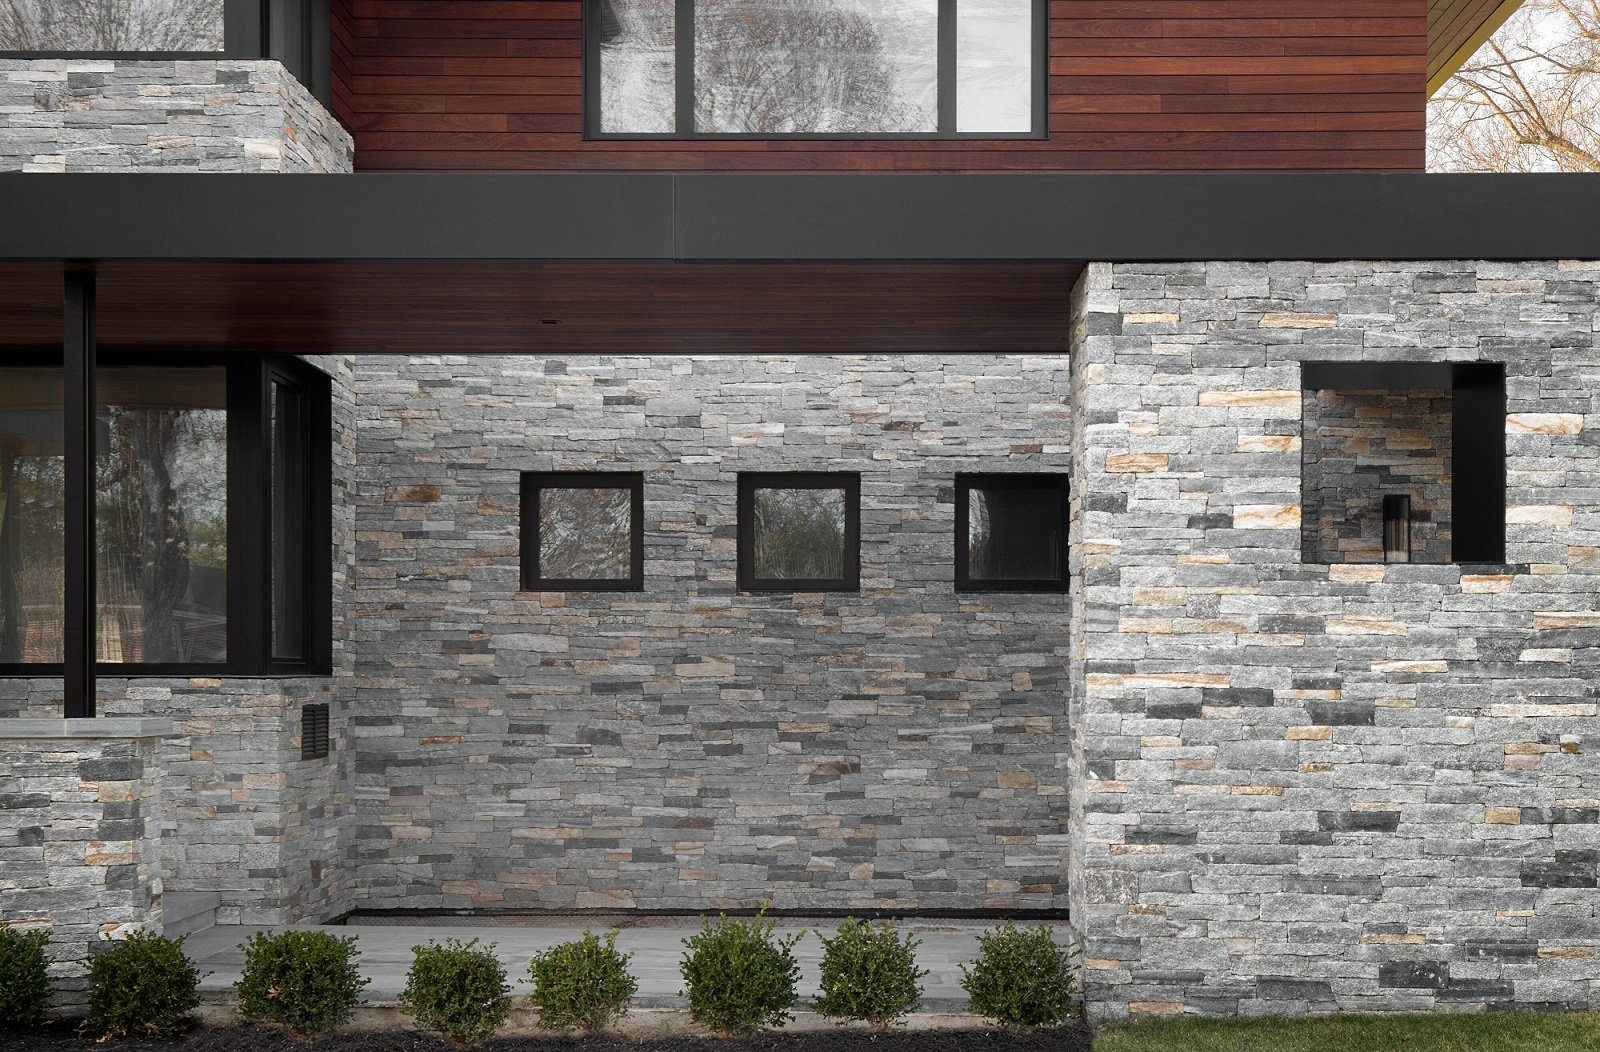 Windows, Metal, and Picture Window Type Side View of Front Entrance  The Manhasset House by Node Architecture, Engineering, Consulting P.C.